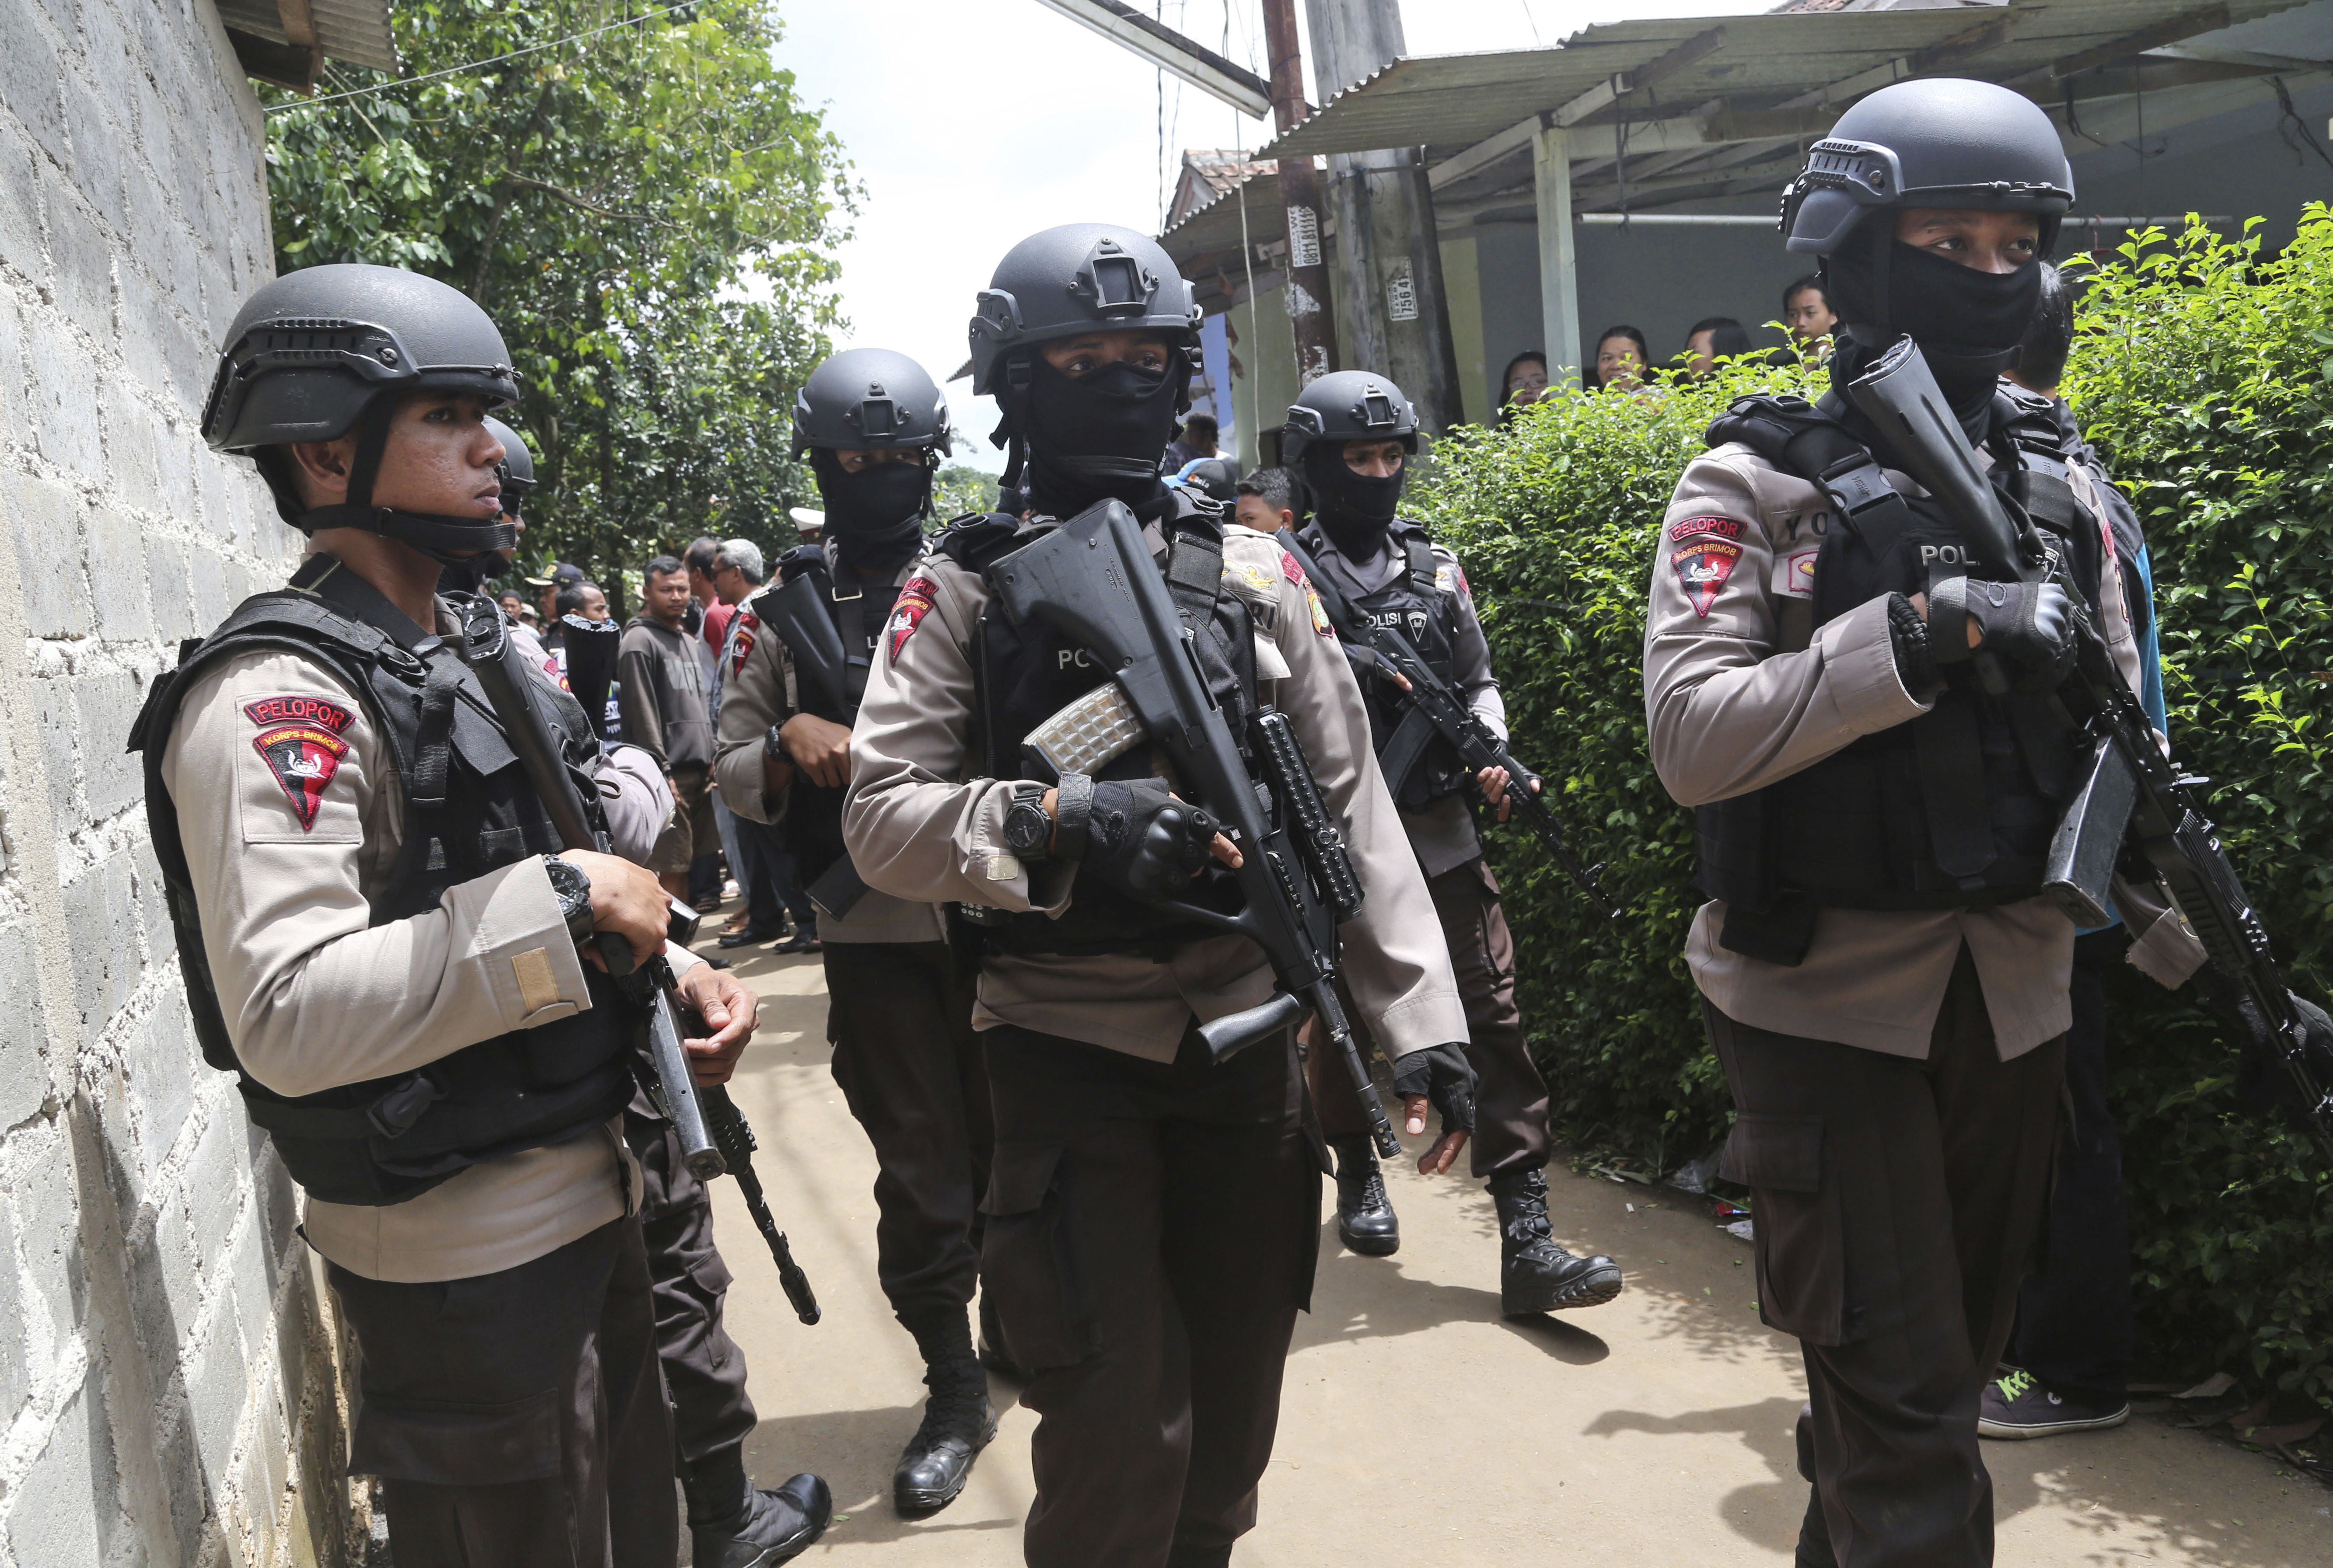 Police officers stand guard at a residential neighborhood in Tangerang, outside Jakarta, where police conducted a raid on a house used by suspected militants, on Dec. 21, 2016